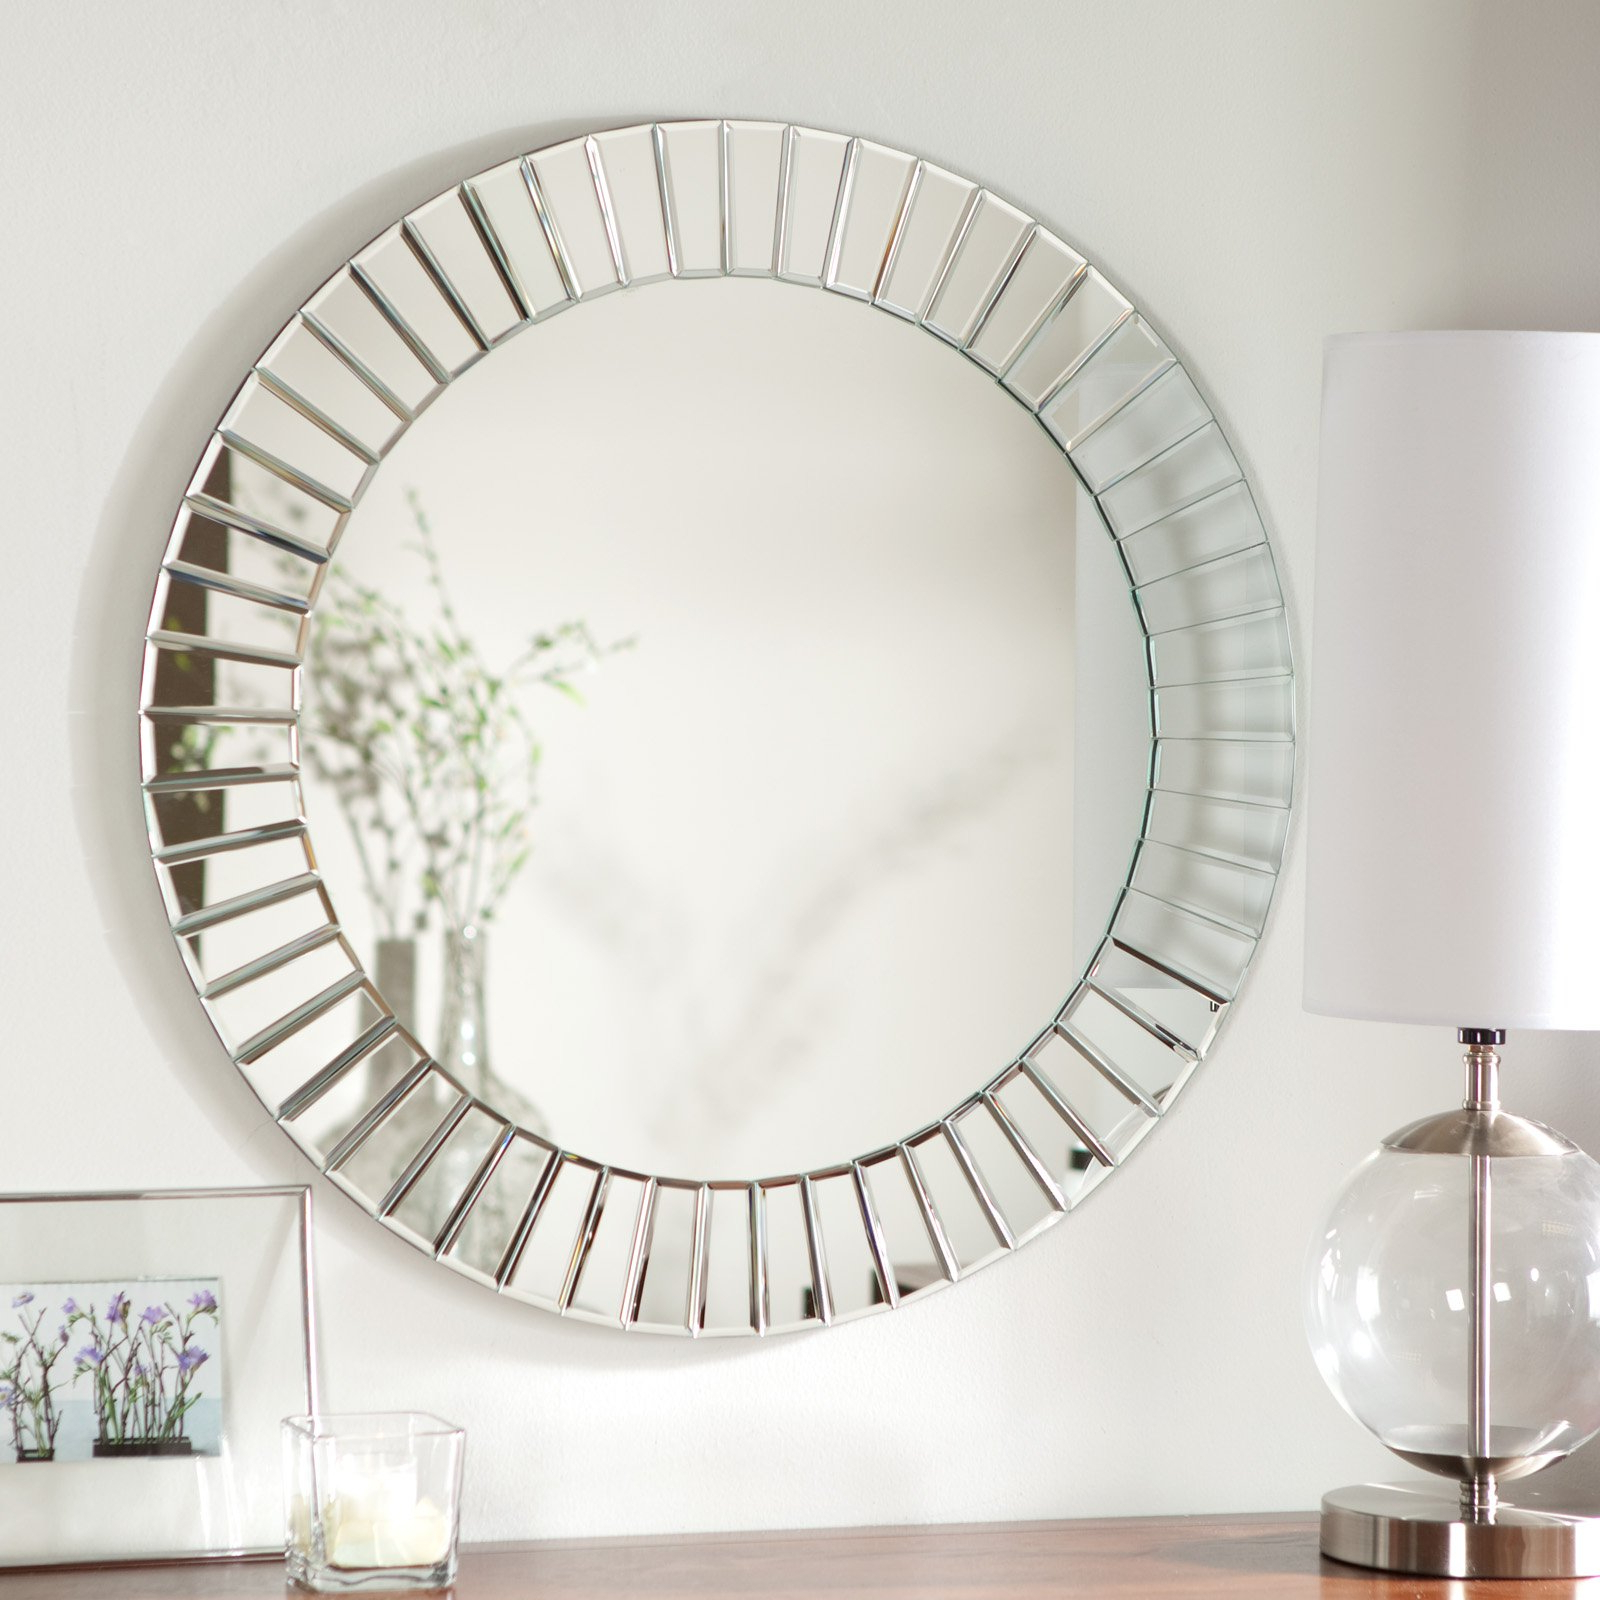 Remarkable Decorative Beveled Wall Mirrors Frame Large Three Diy With Regard To Well Known Large Beveled Wall Mirrors (View 15 of 20)